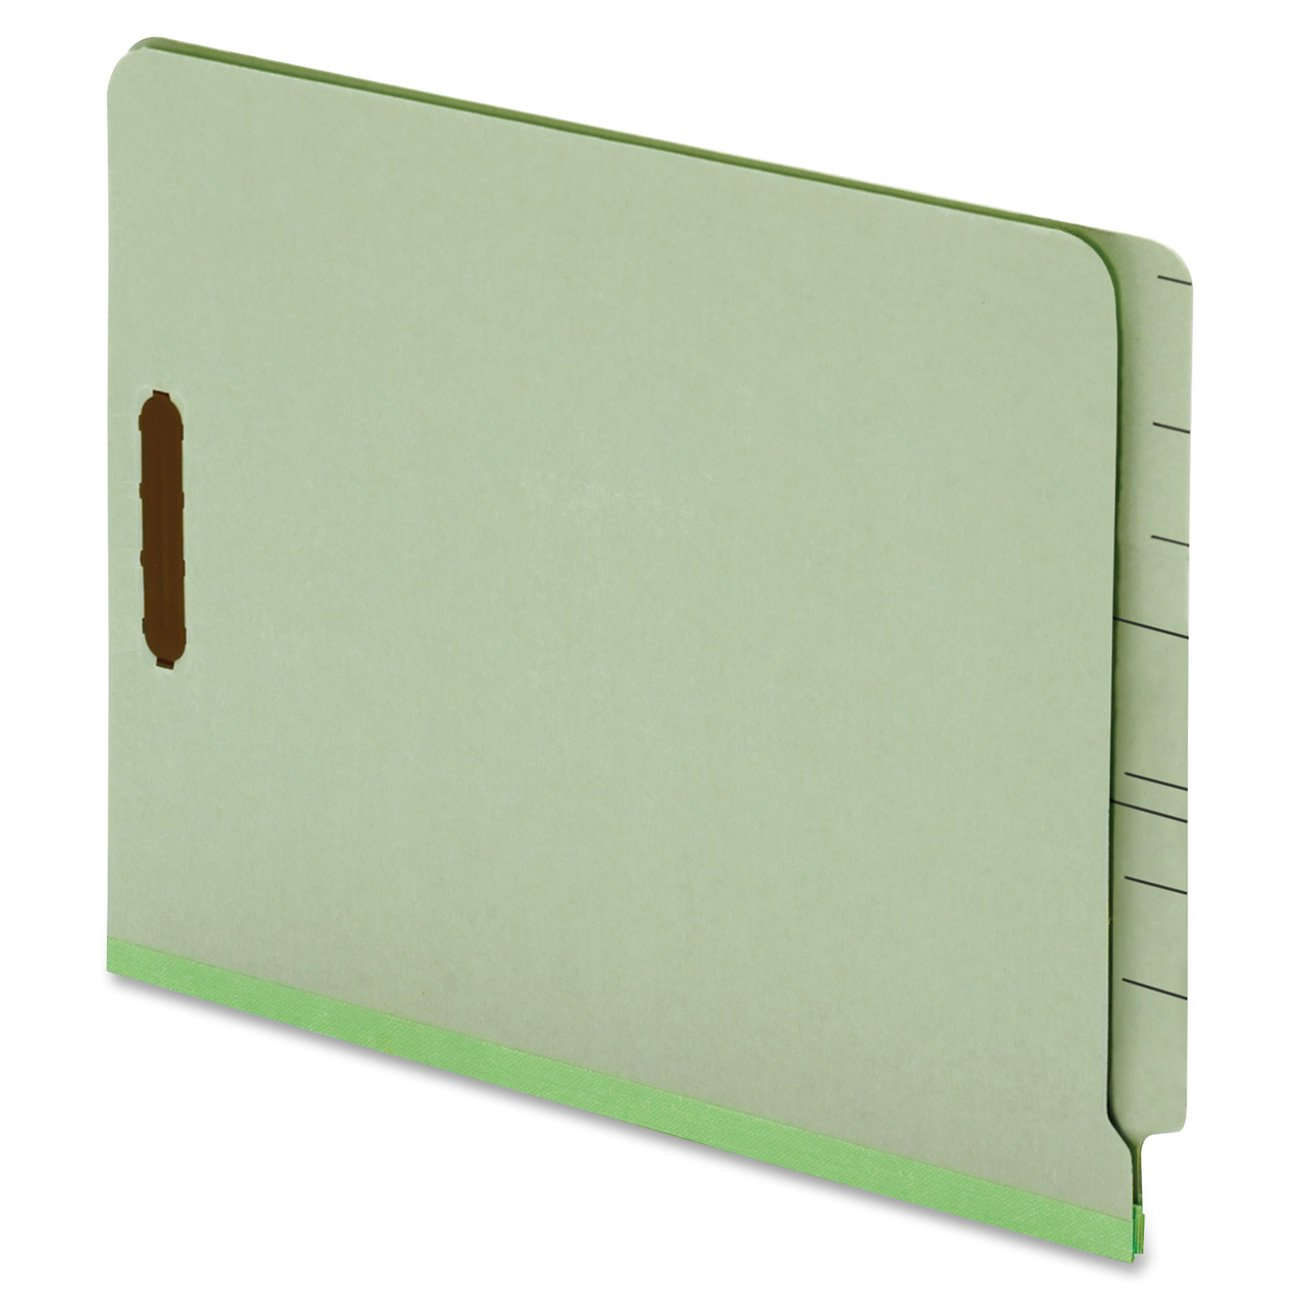 Globe-Weis End Tab Pressboard Folders with Fasteners, 2-Inch Expansion, 2-Inch Fasteners, Legal Size, Green, 25 Folders per Pack (47715GW)